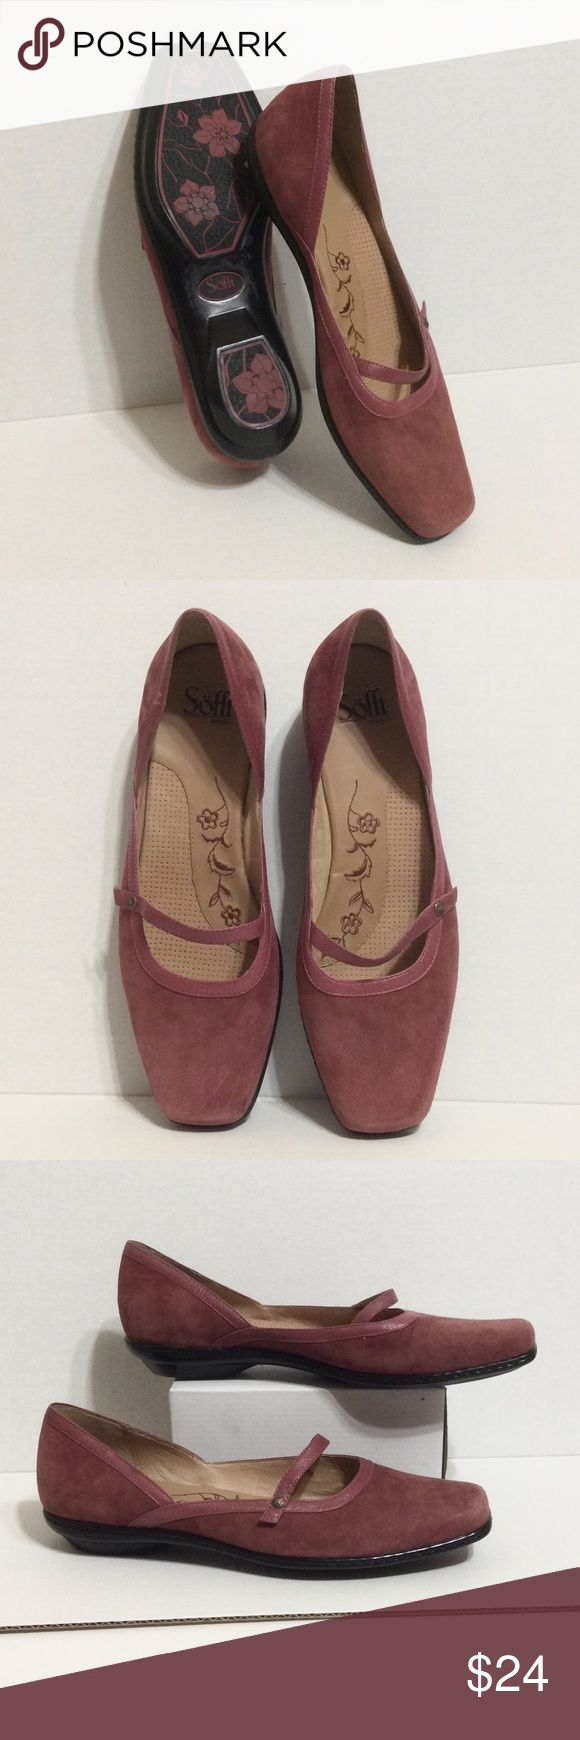 Salmon leather Sofft walking shoe NWOT Never worn gorgeous shoes with the comfy know how of Sofft, MATERIAL SUEDE, SIZE 10M Shoes Flats & Loafers